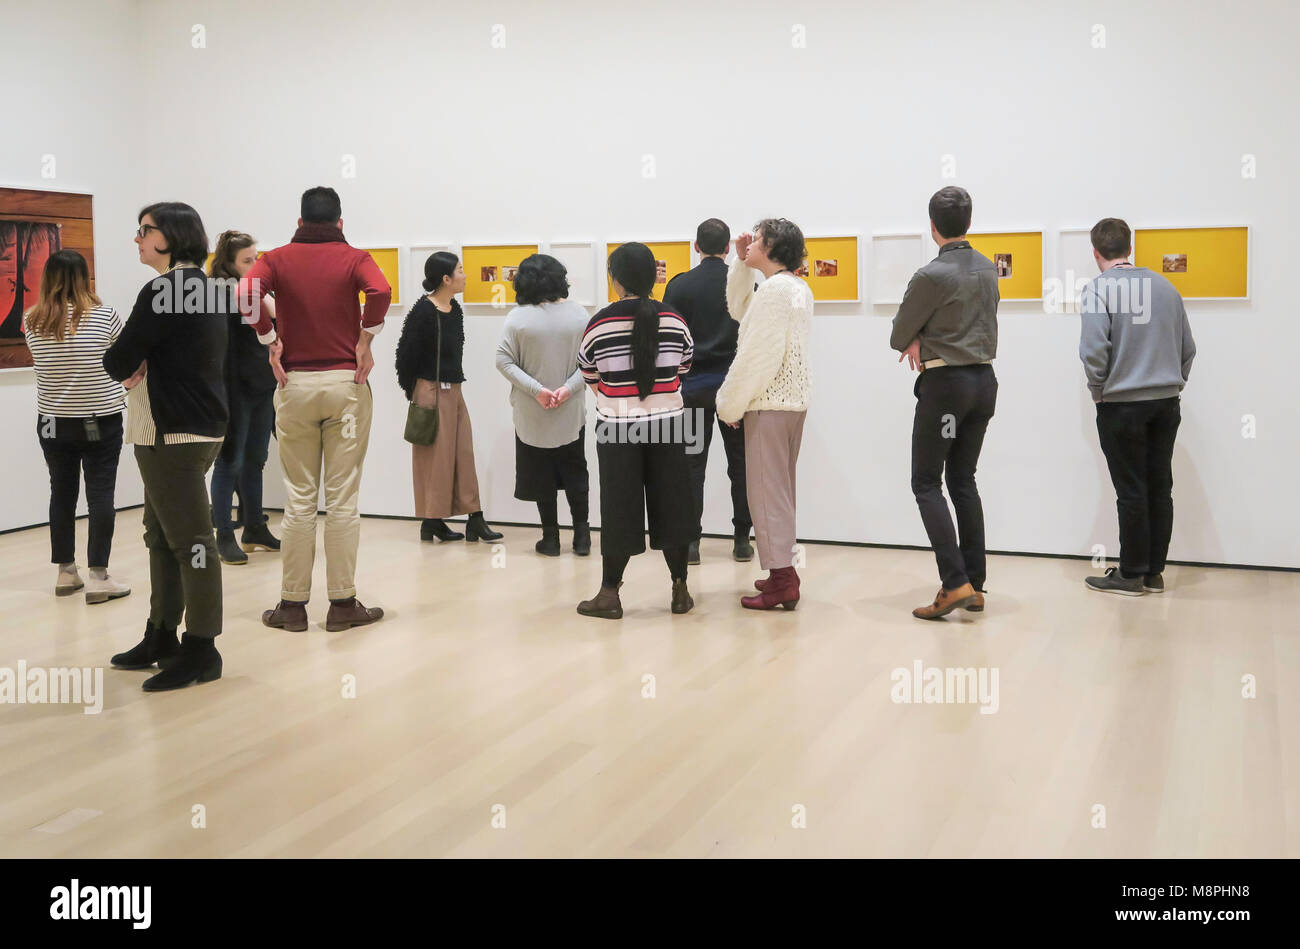 'Being: New Photography 2018' Exhibition at the Museum of Modern Art, NYC, USA - Stock Image